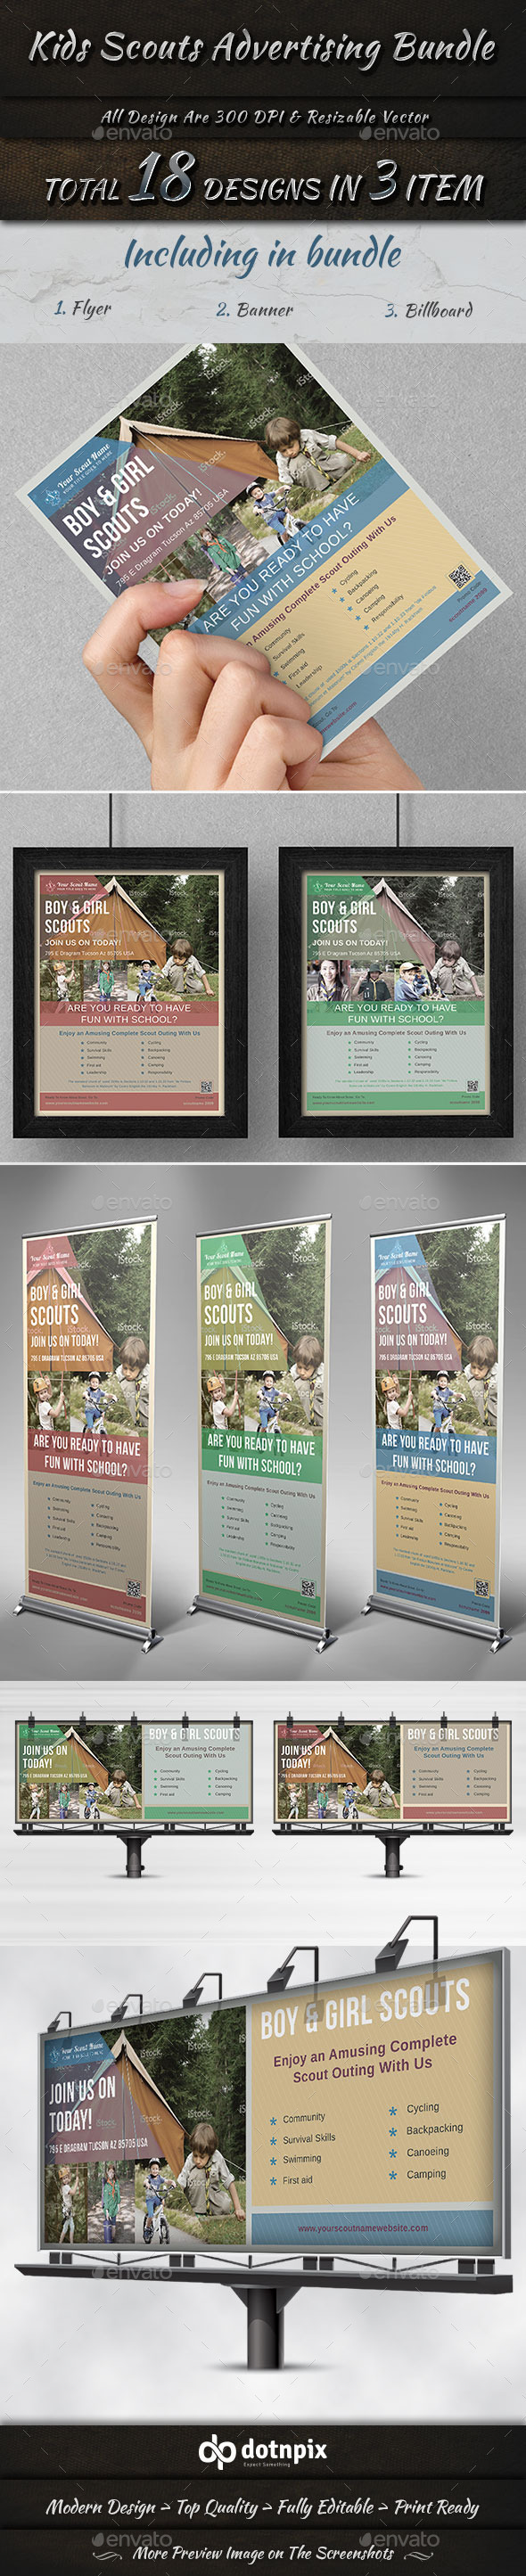 Kids Scouts Advertising Bundle - Stationery Print Templates